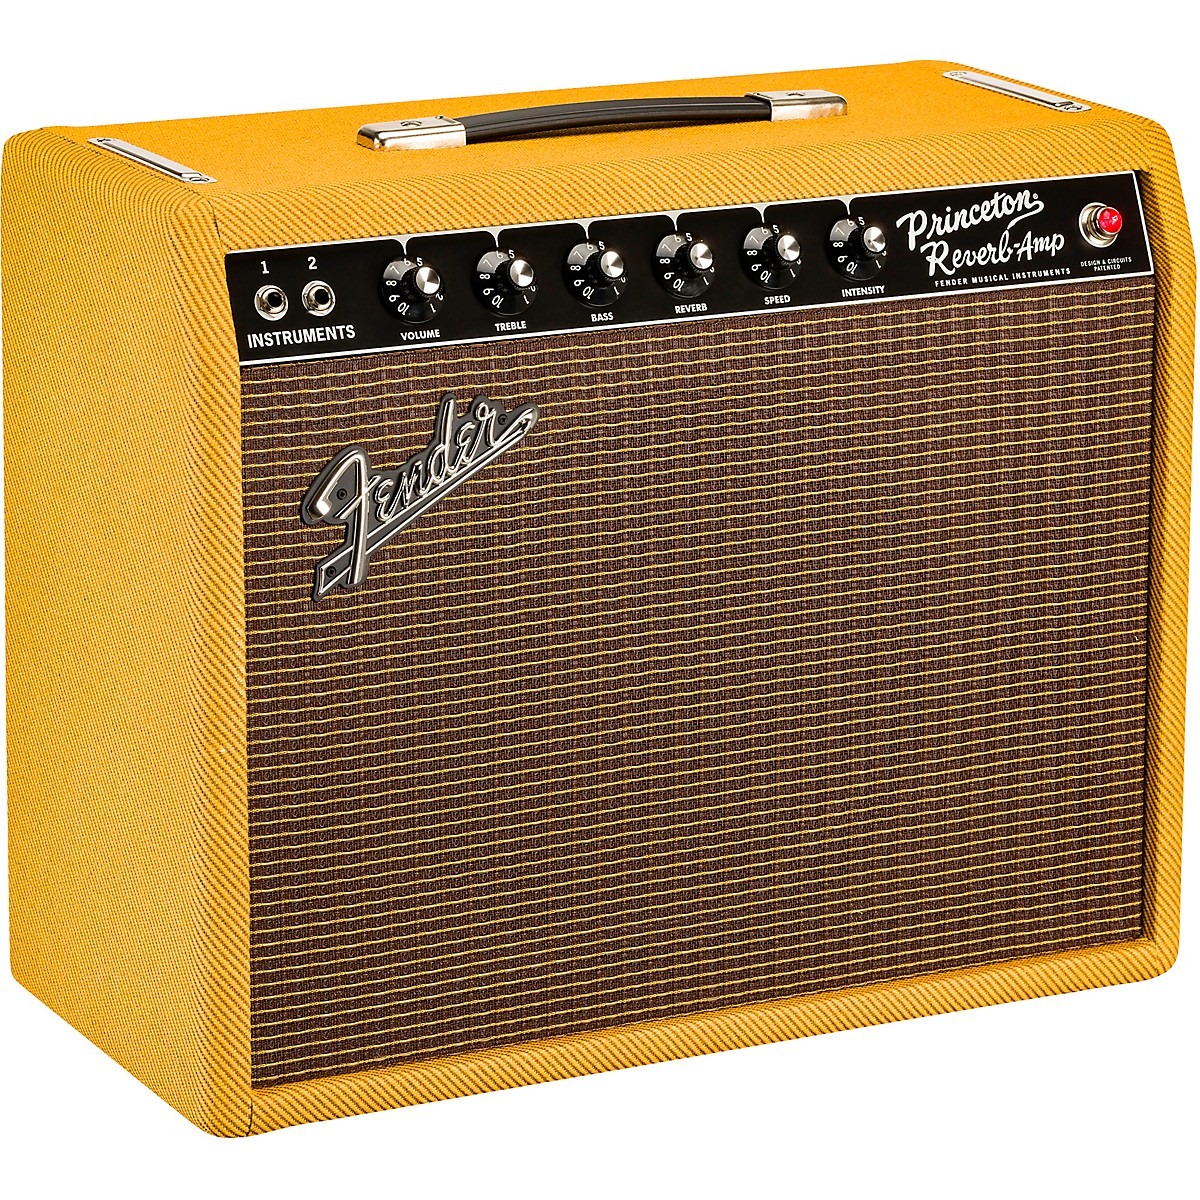 Fender Limited-Edition '65 Princeton Reverb 12W 1x12 Tube Guitar Combo Amp